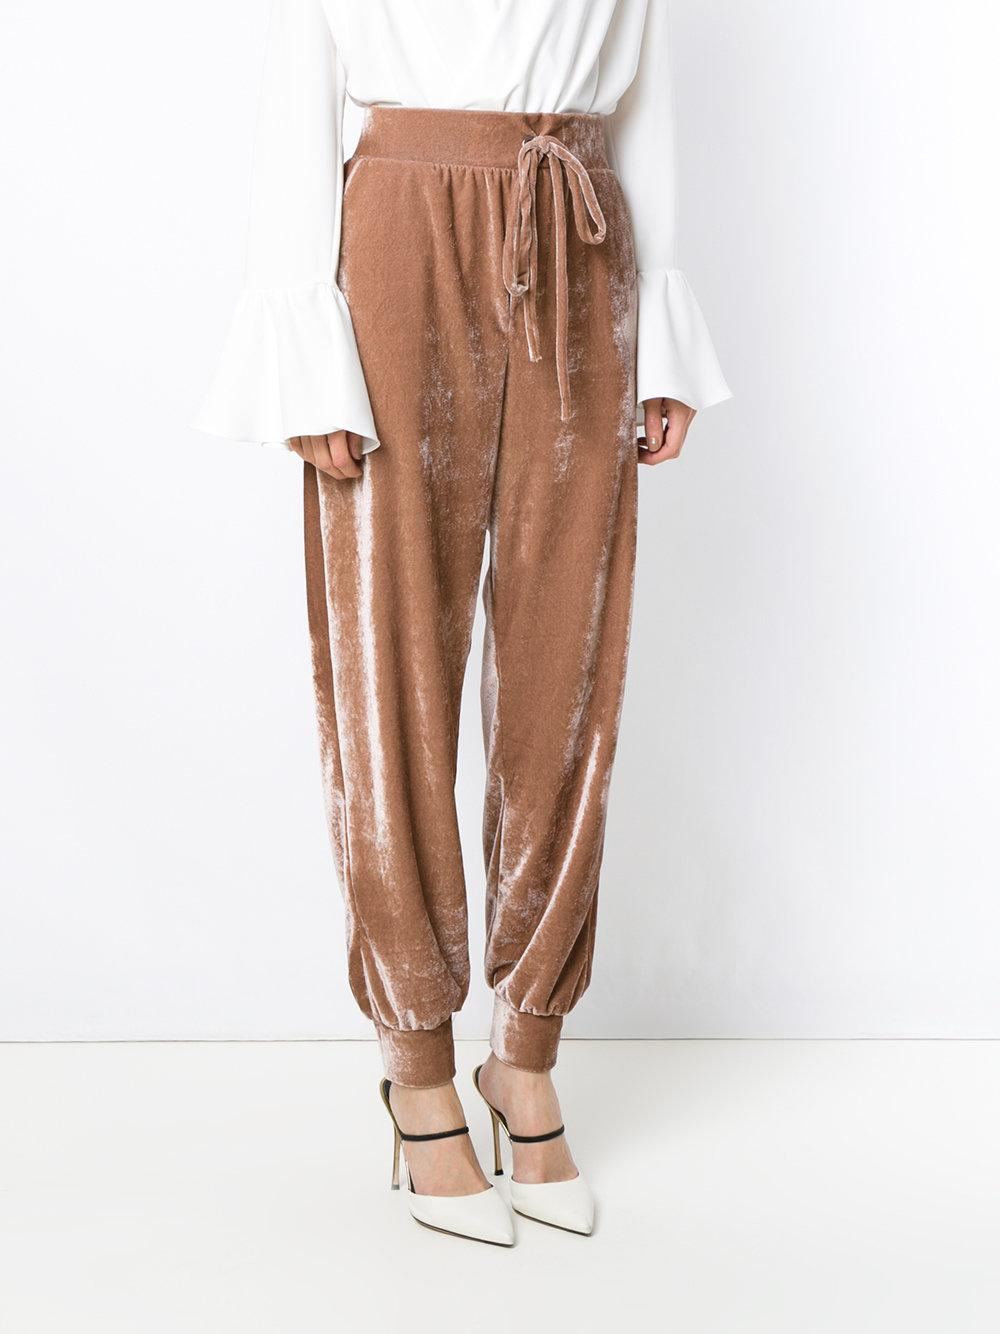 Olympiah Synthetic Pisco Sour Track Pants in Brown